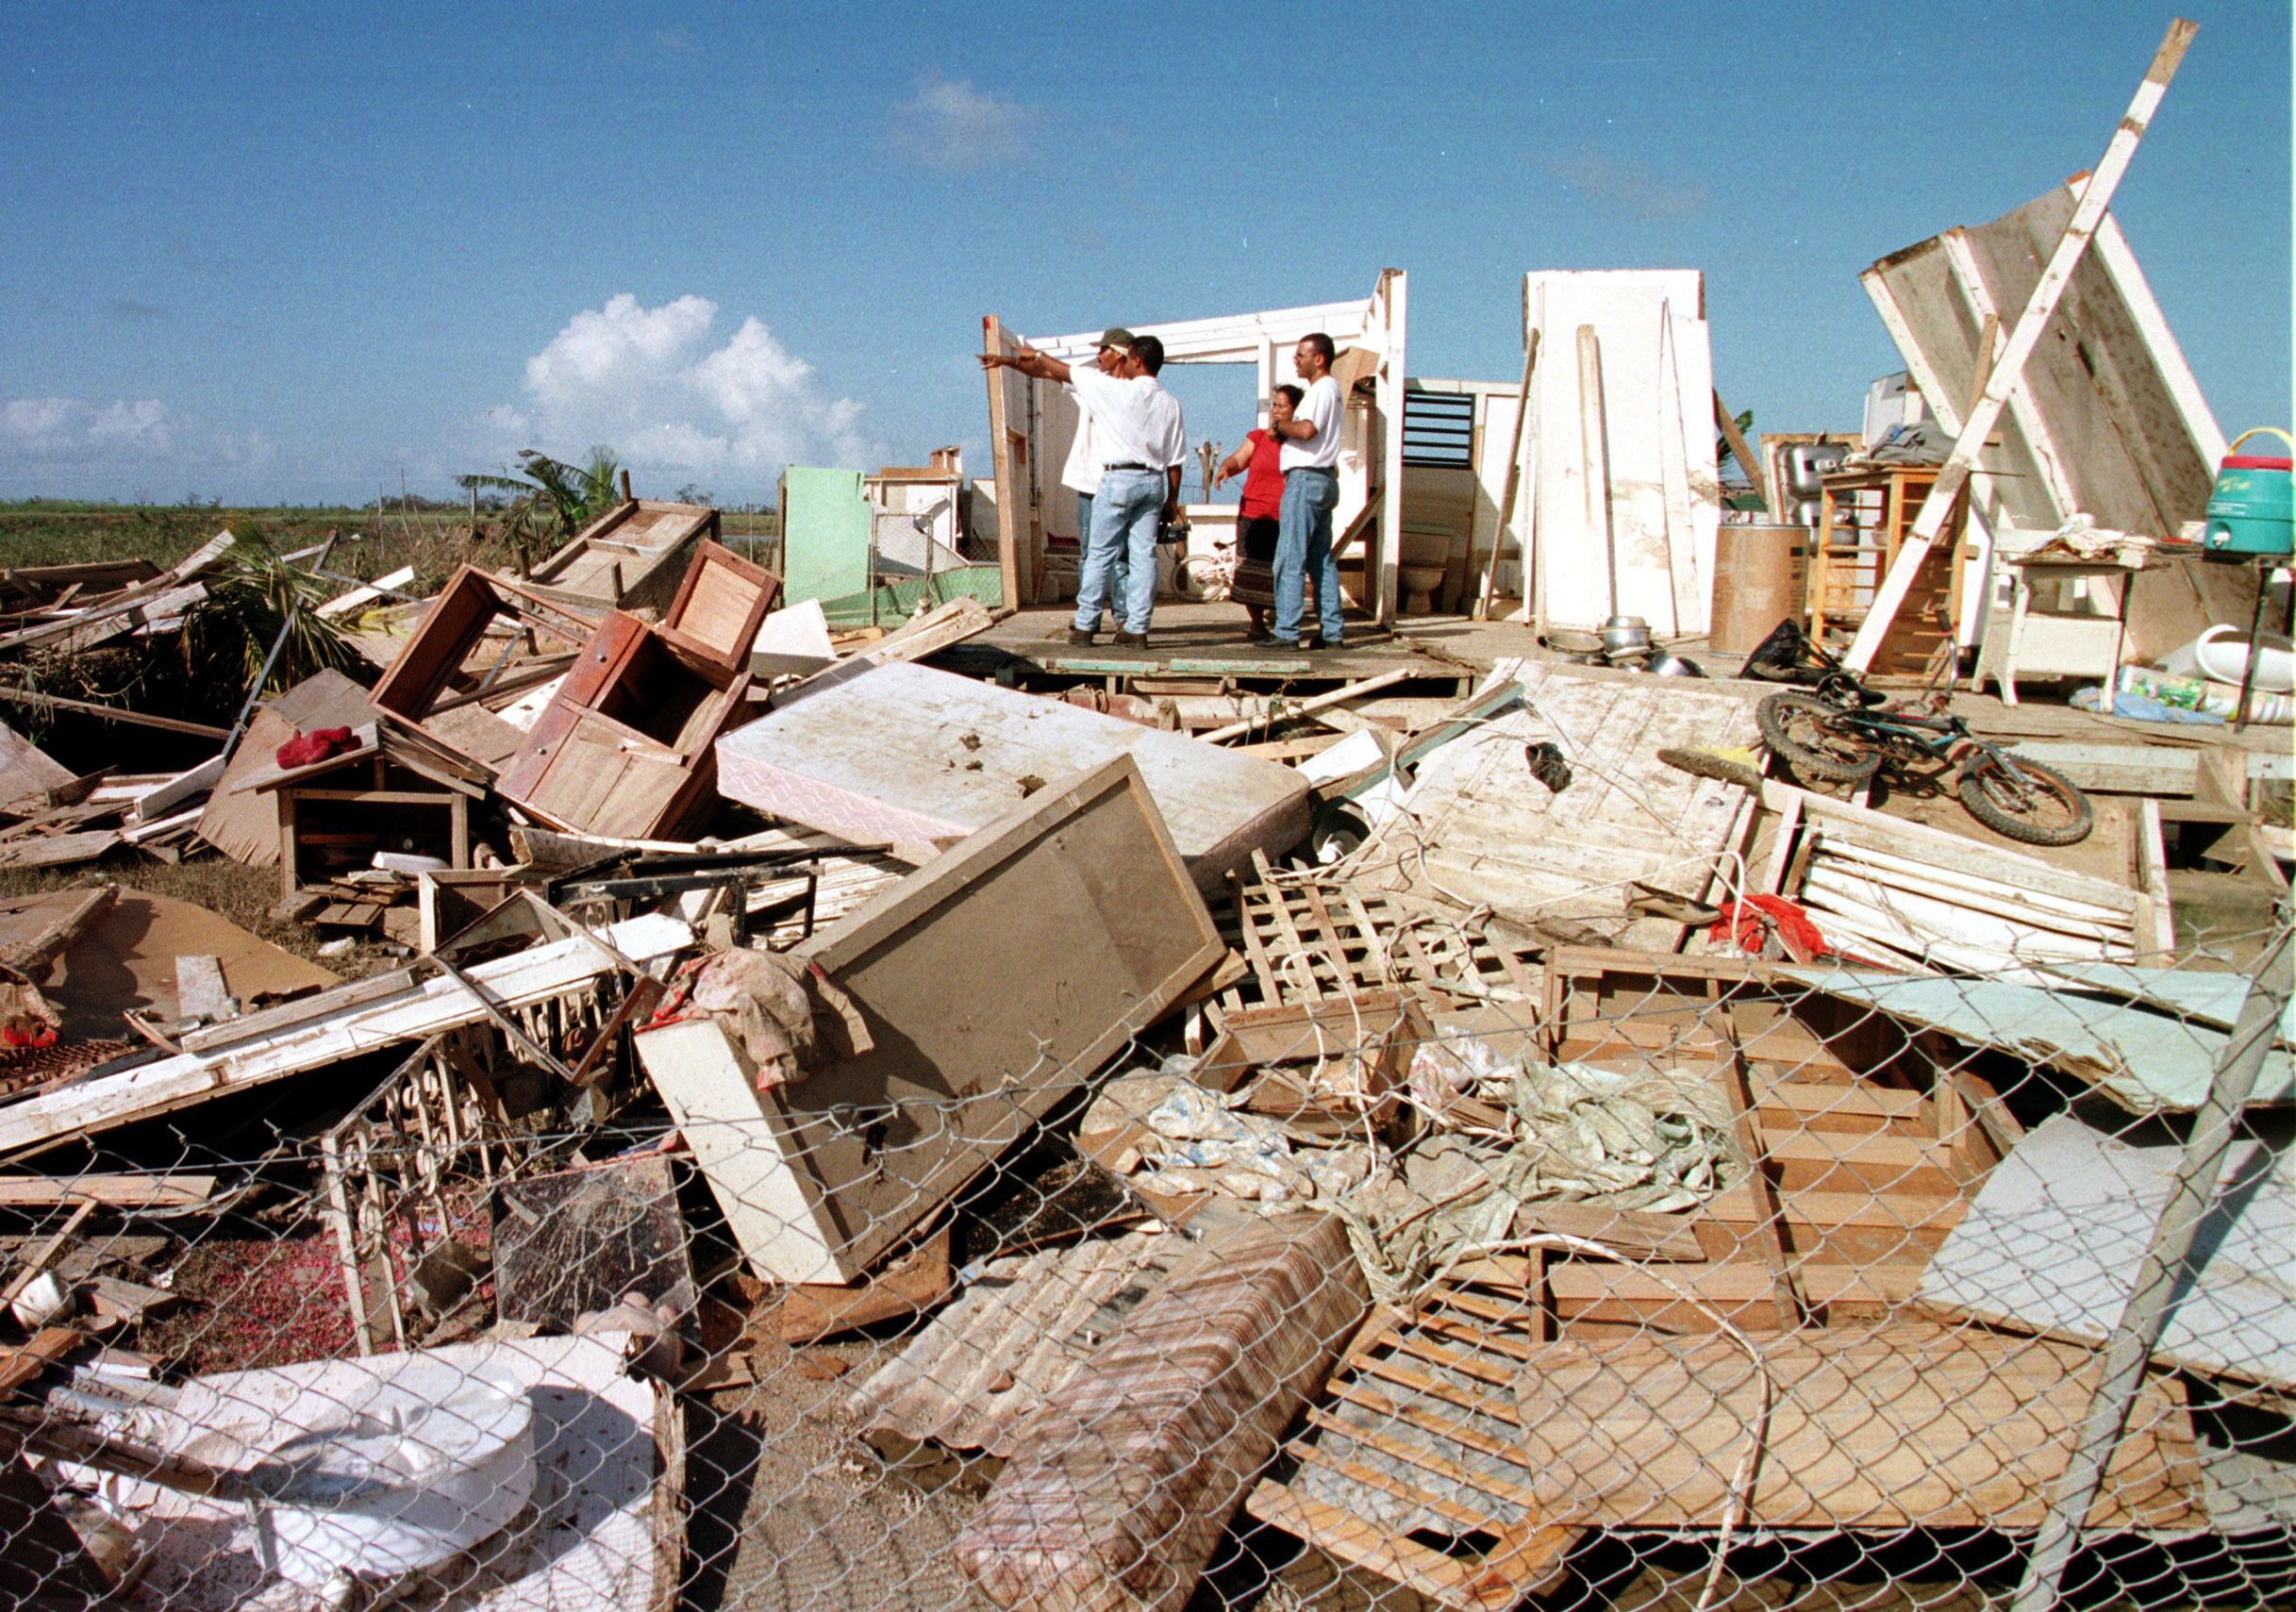 Hurricane Maria In Puerto Rico Http Www Wikiwand Com En Effects Of Hurricane Georges In Puerto Rico Being A Landlord Puerto Rico Hurricane